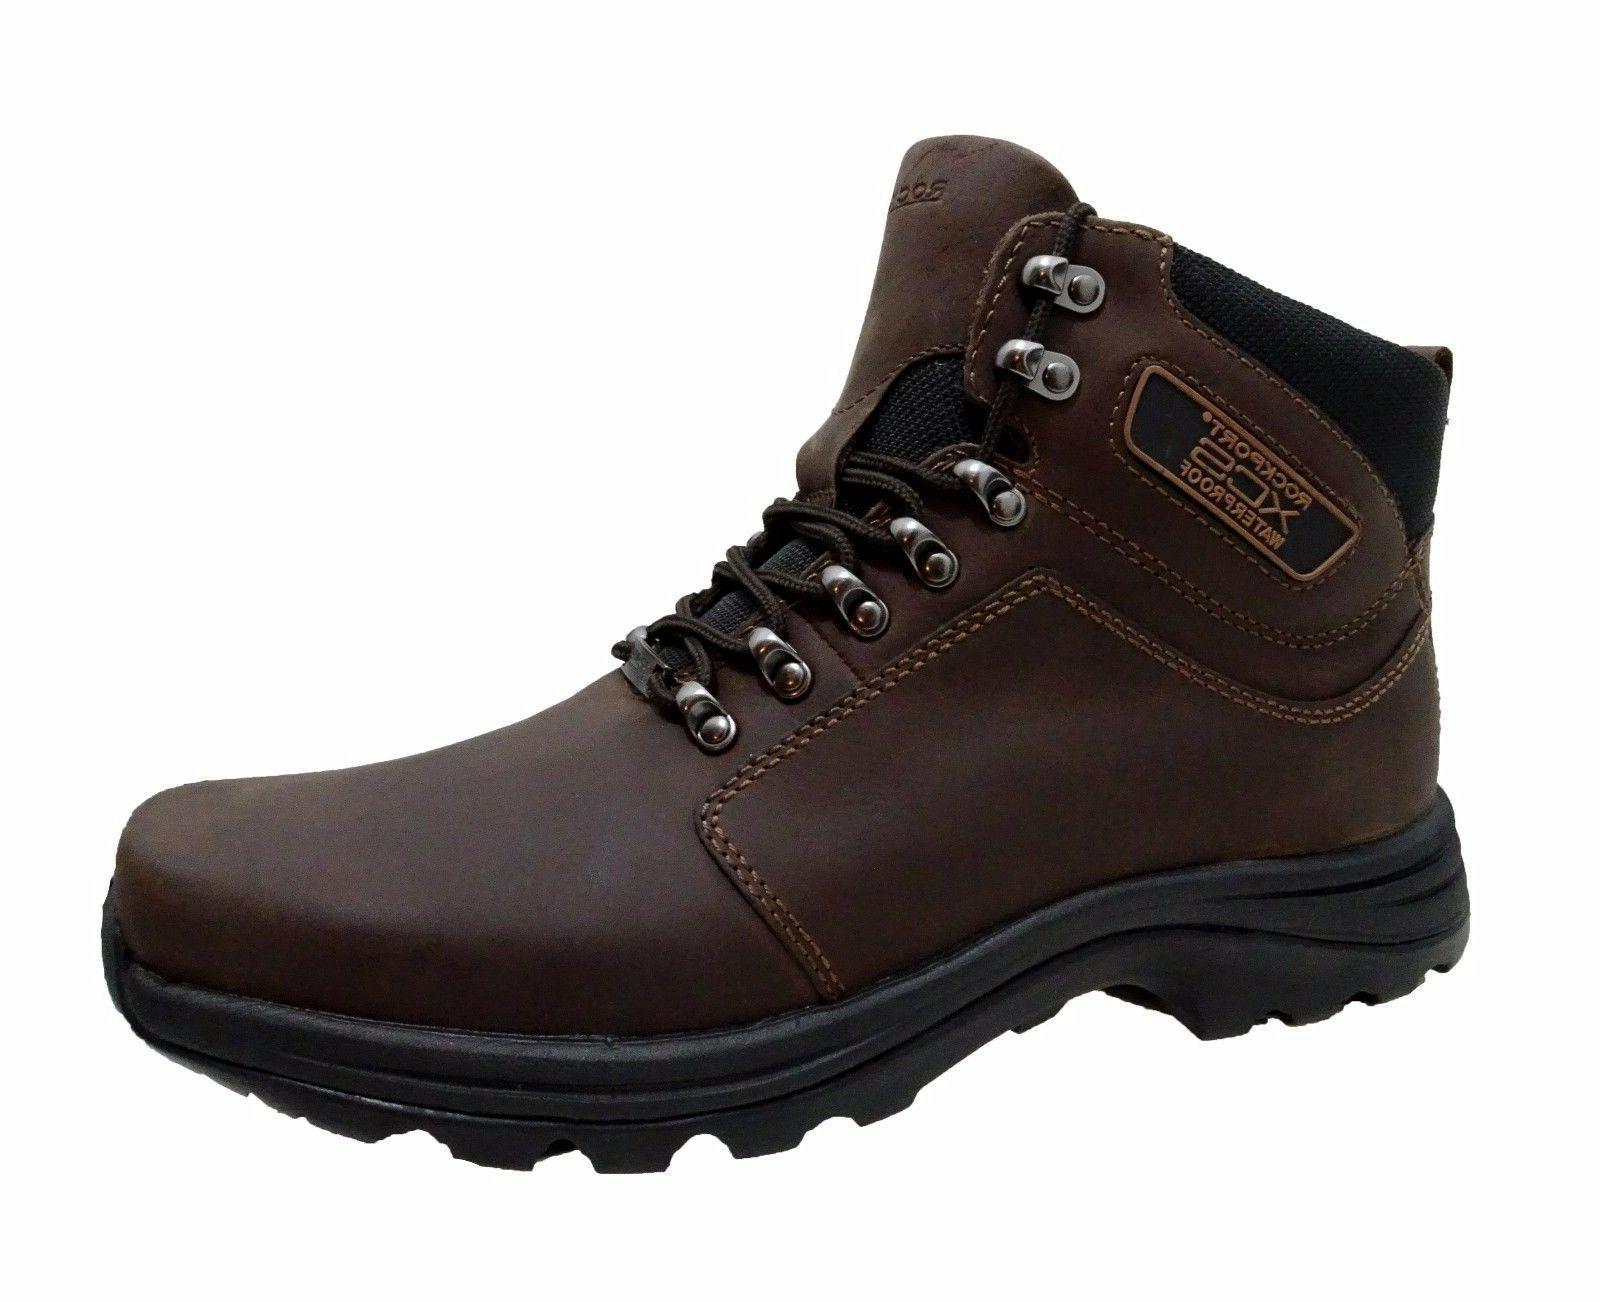 mens elkhart waterproof lace up hiking trail